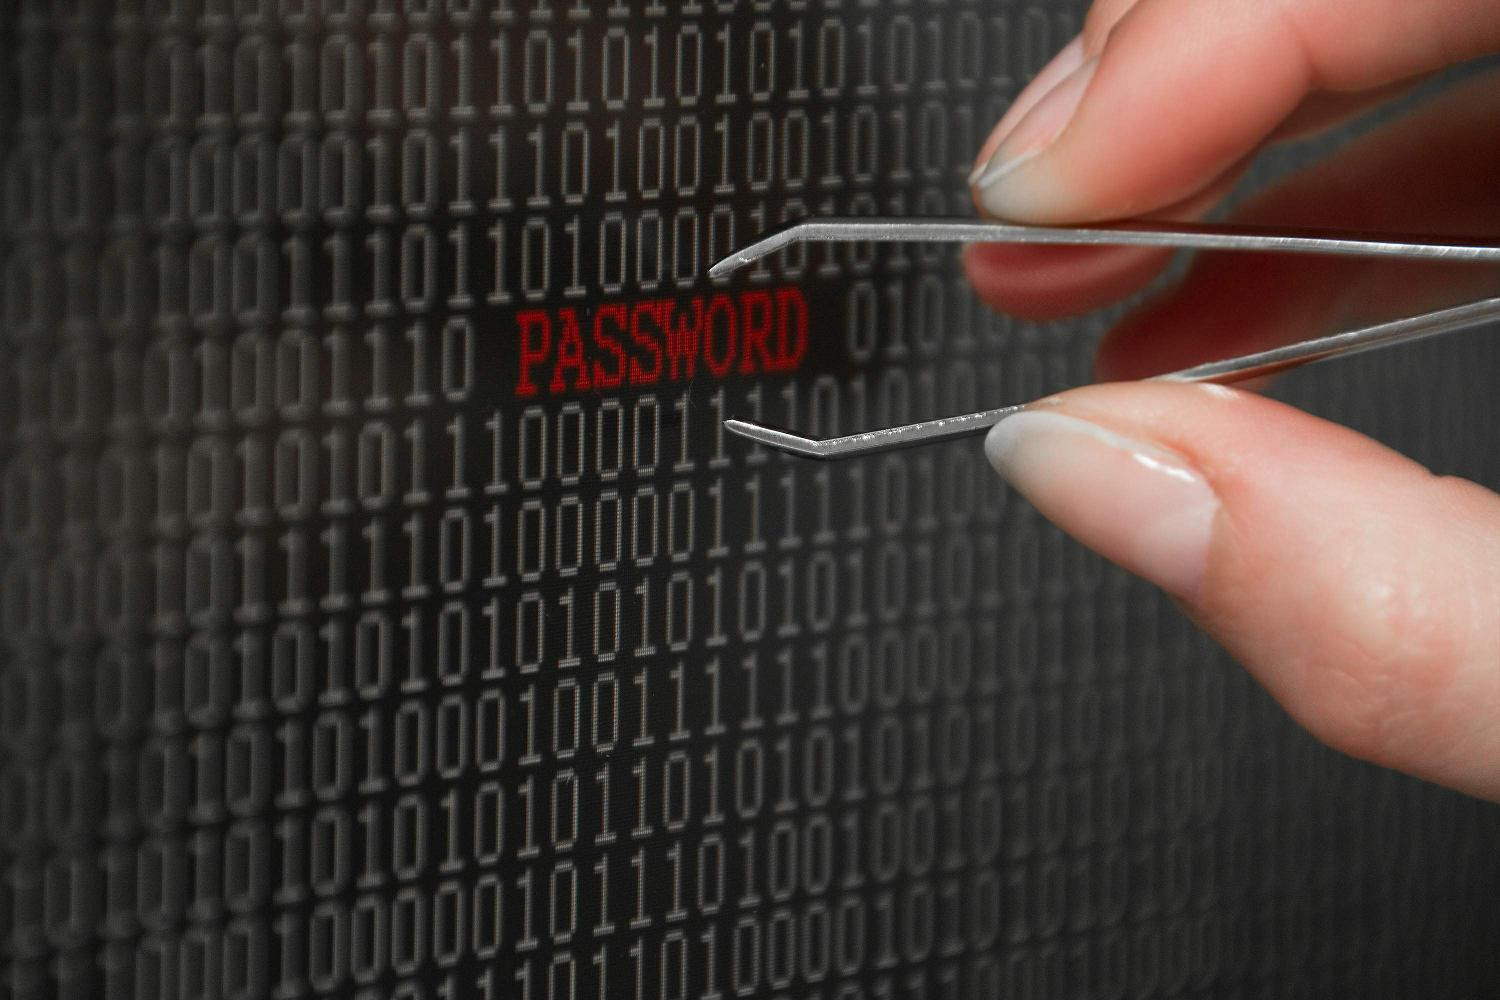 Foto: capturando una password